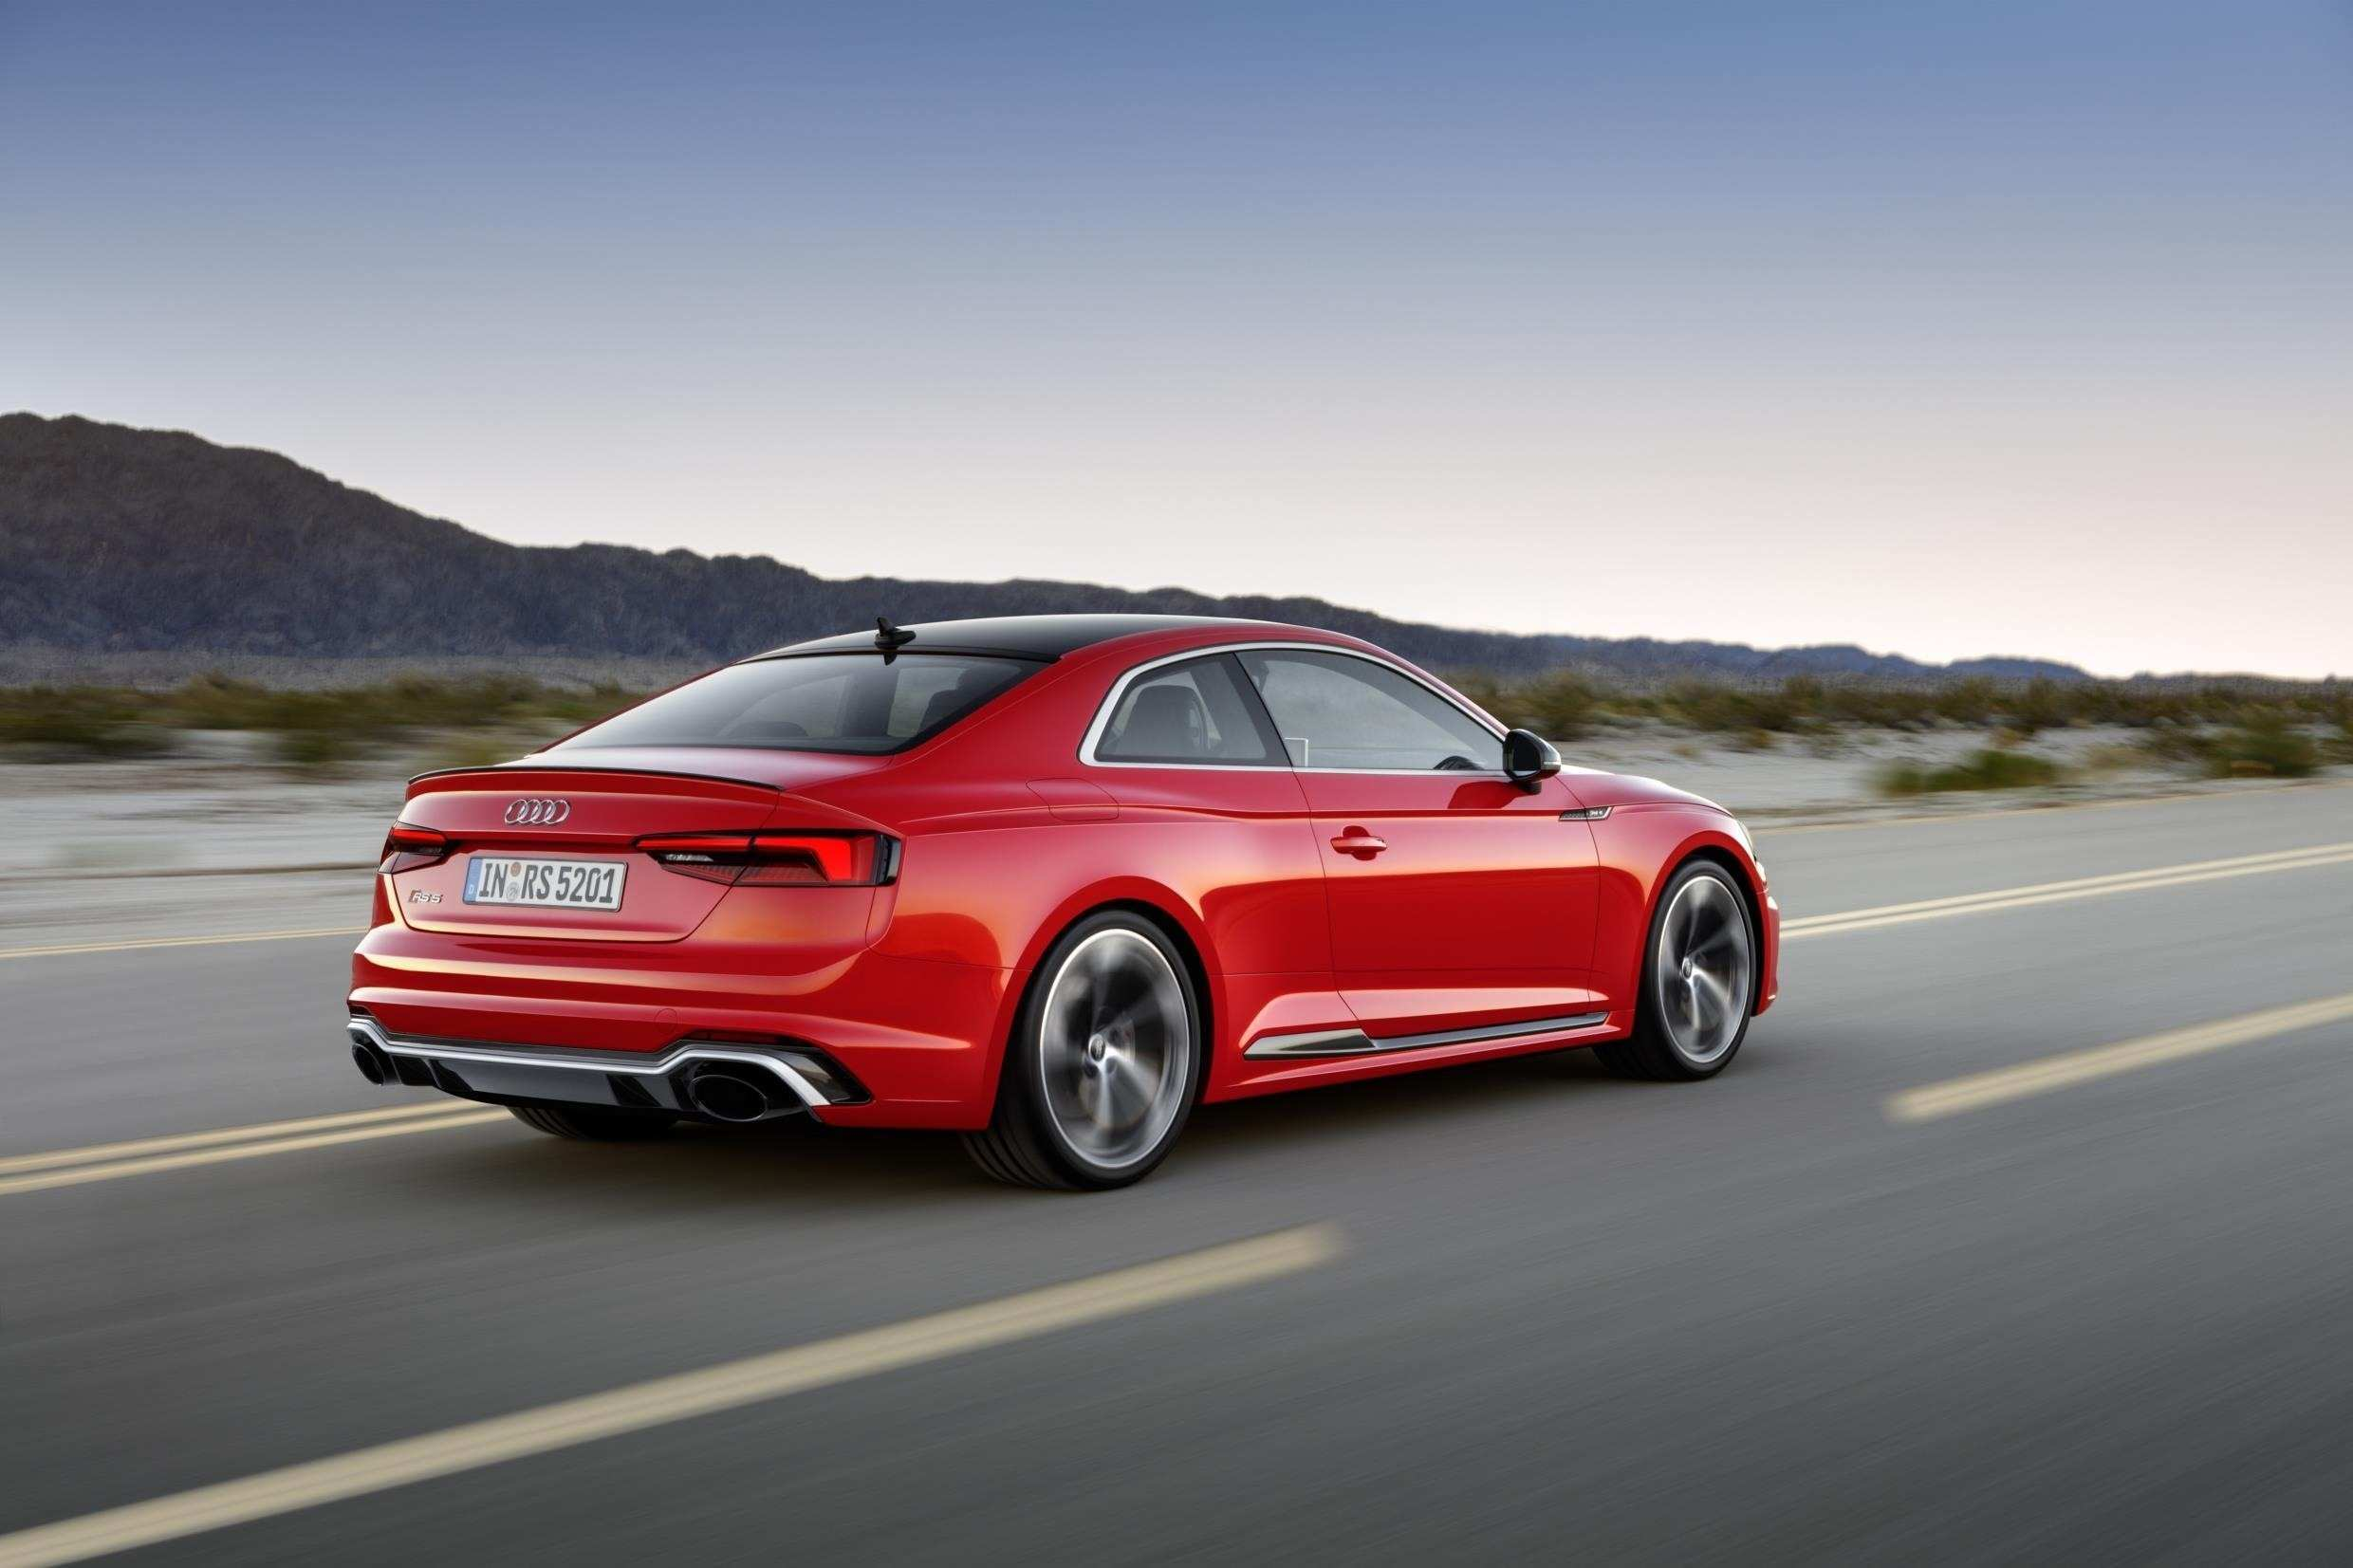 29 Concept of New 2019 Audi Rs5 Interior for New 2019 Audi Rs5